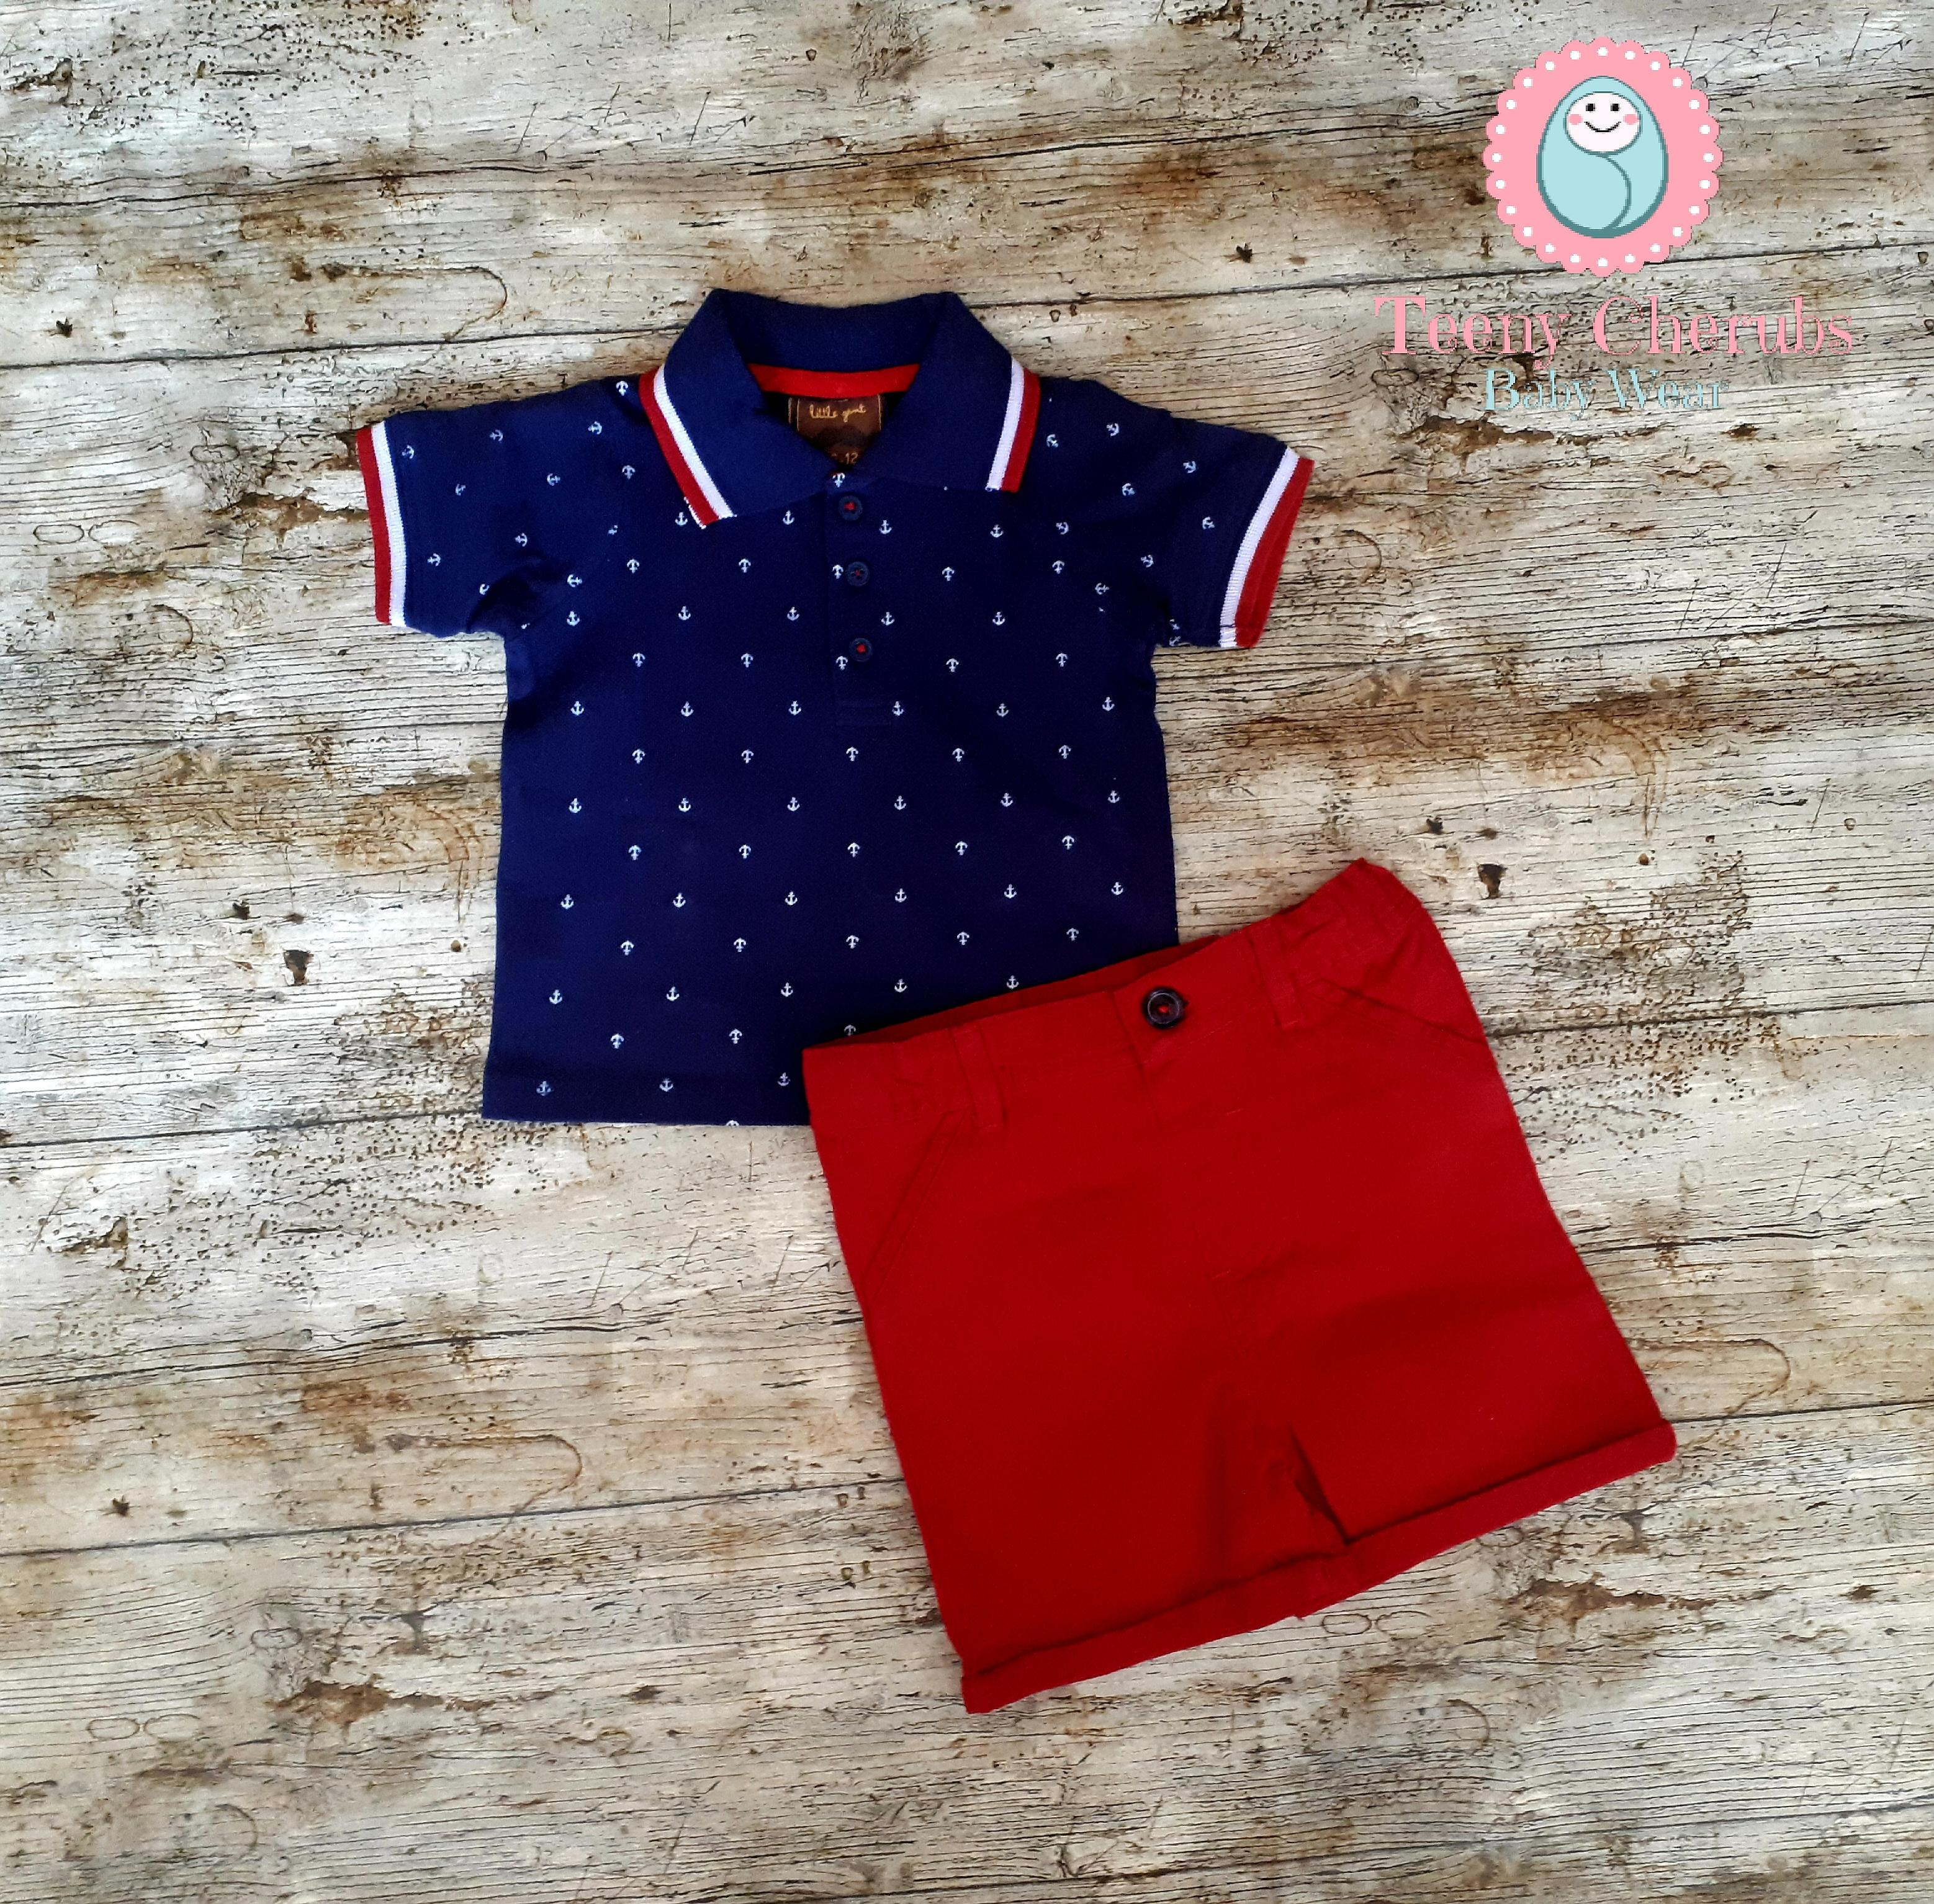 Red Polo Shirt For Toddler Boy Summer Cook